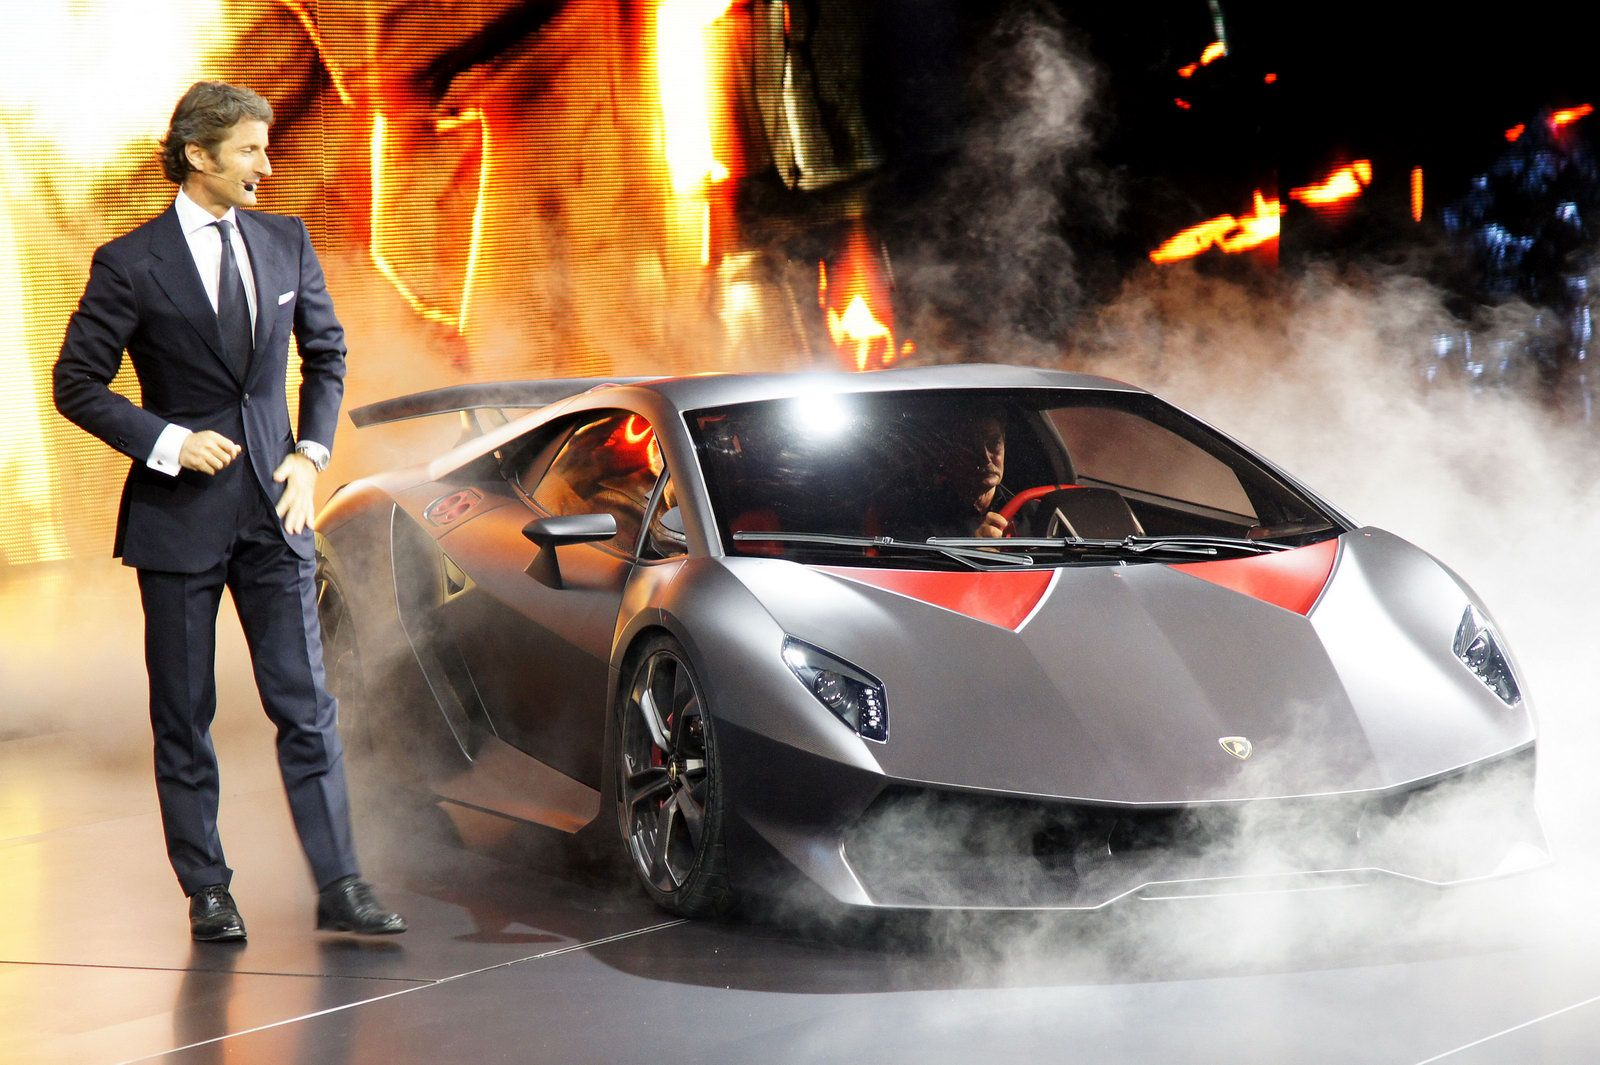 This concept signals lambos intention to withdraw from the top speed war which the worlds supercar makers have been embroiled in for some time